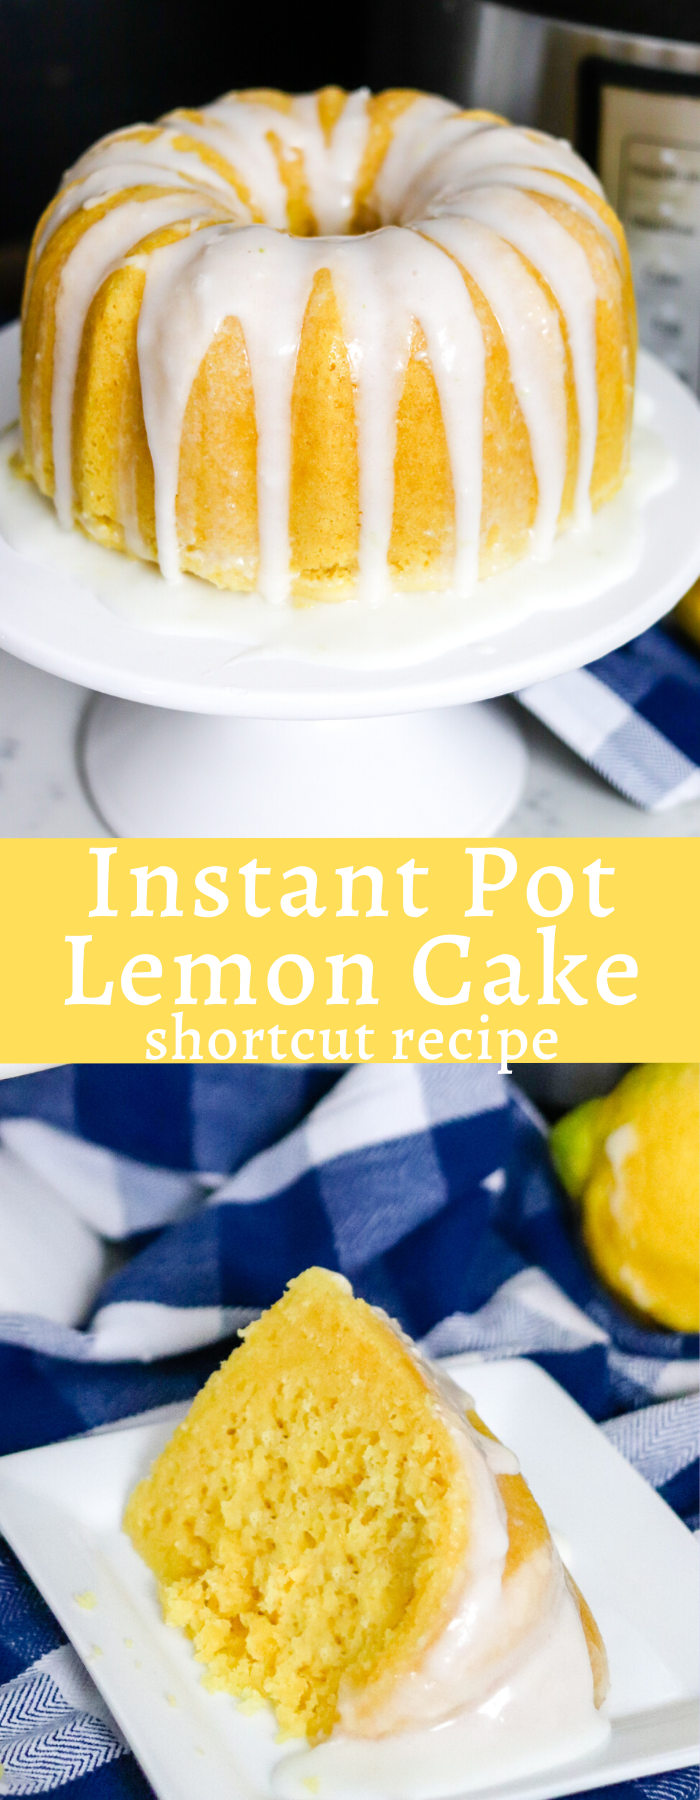 This Instant Pot Lemon Cake is the easiest and most delicious cake! Made in half the time and incredibly moist, you will never make cake another way!